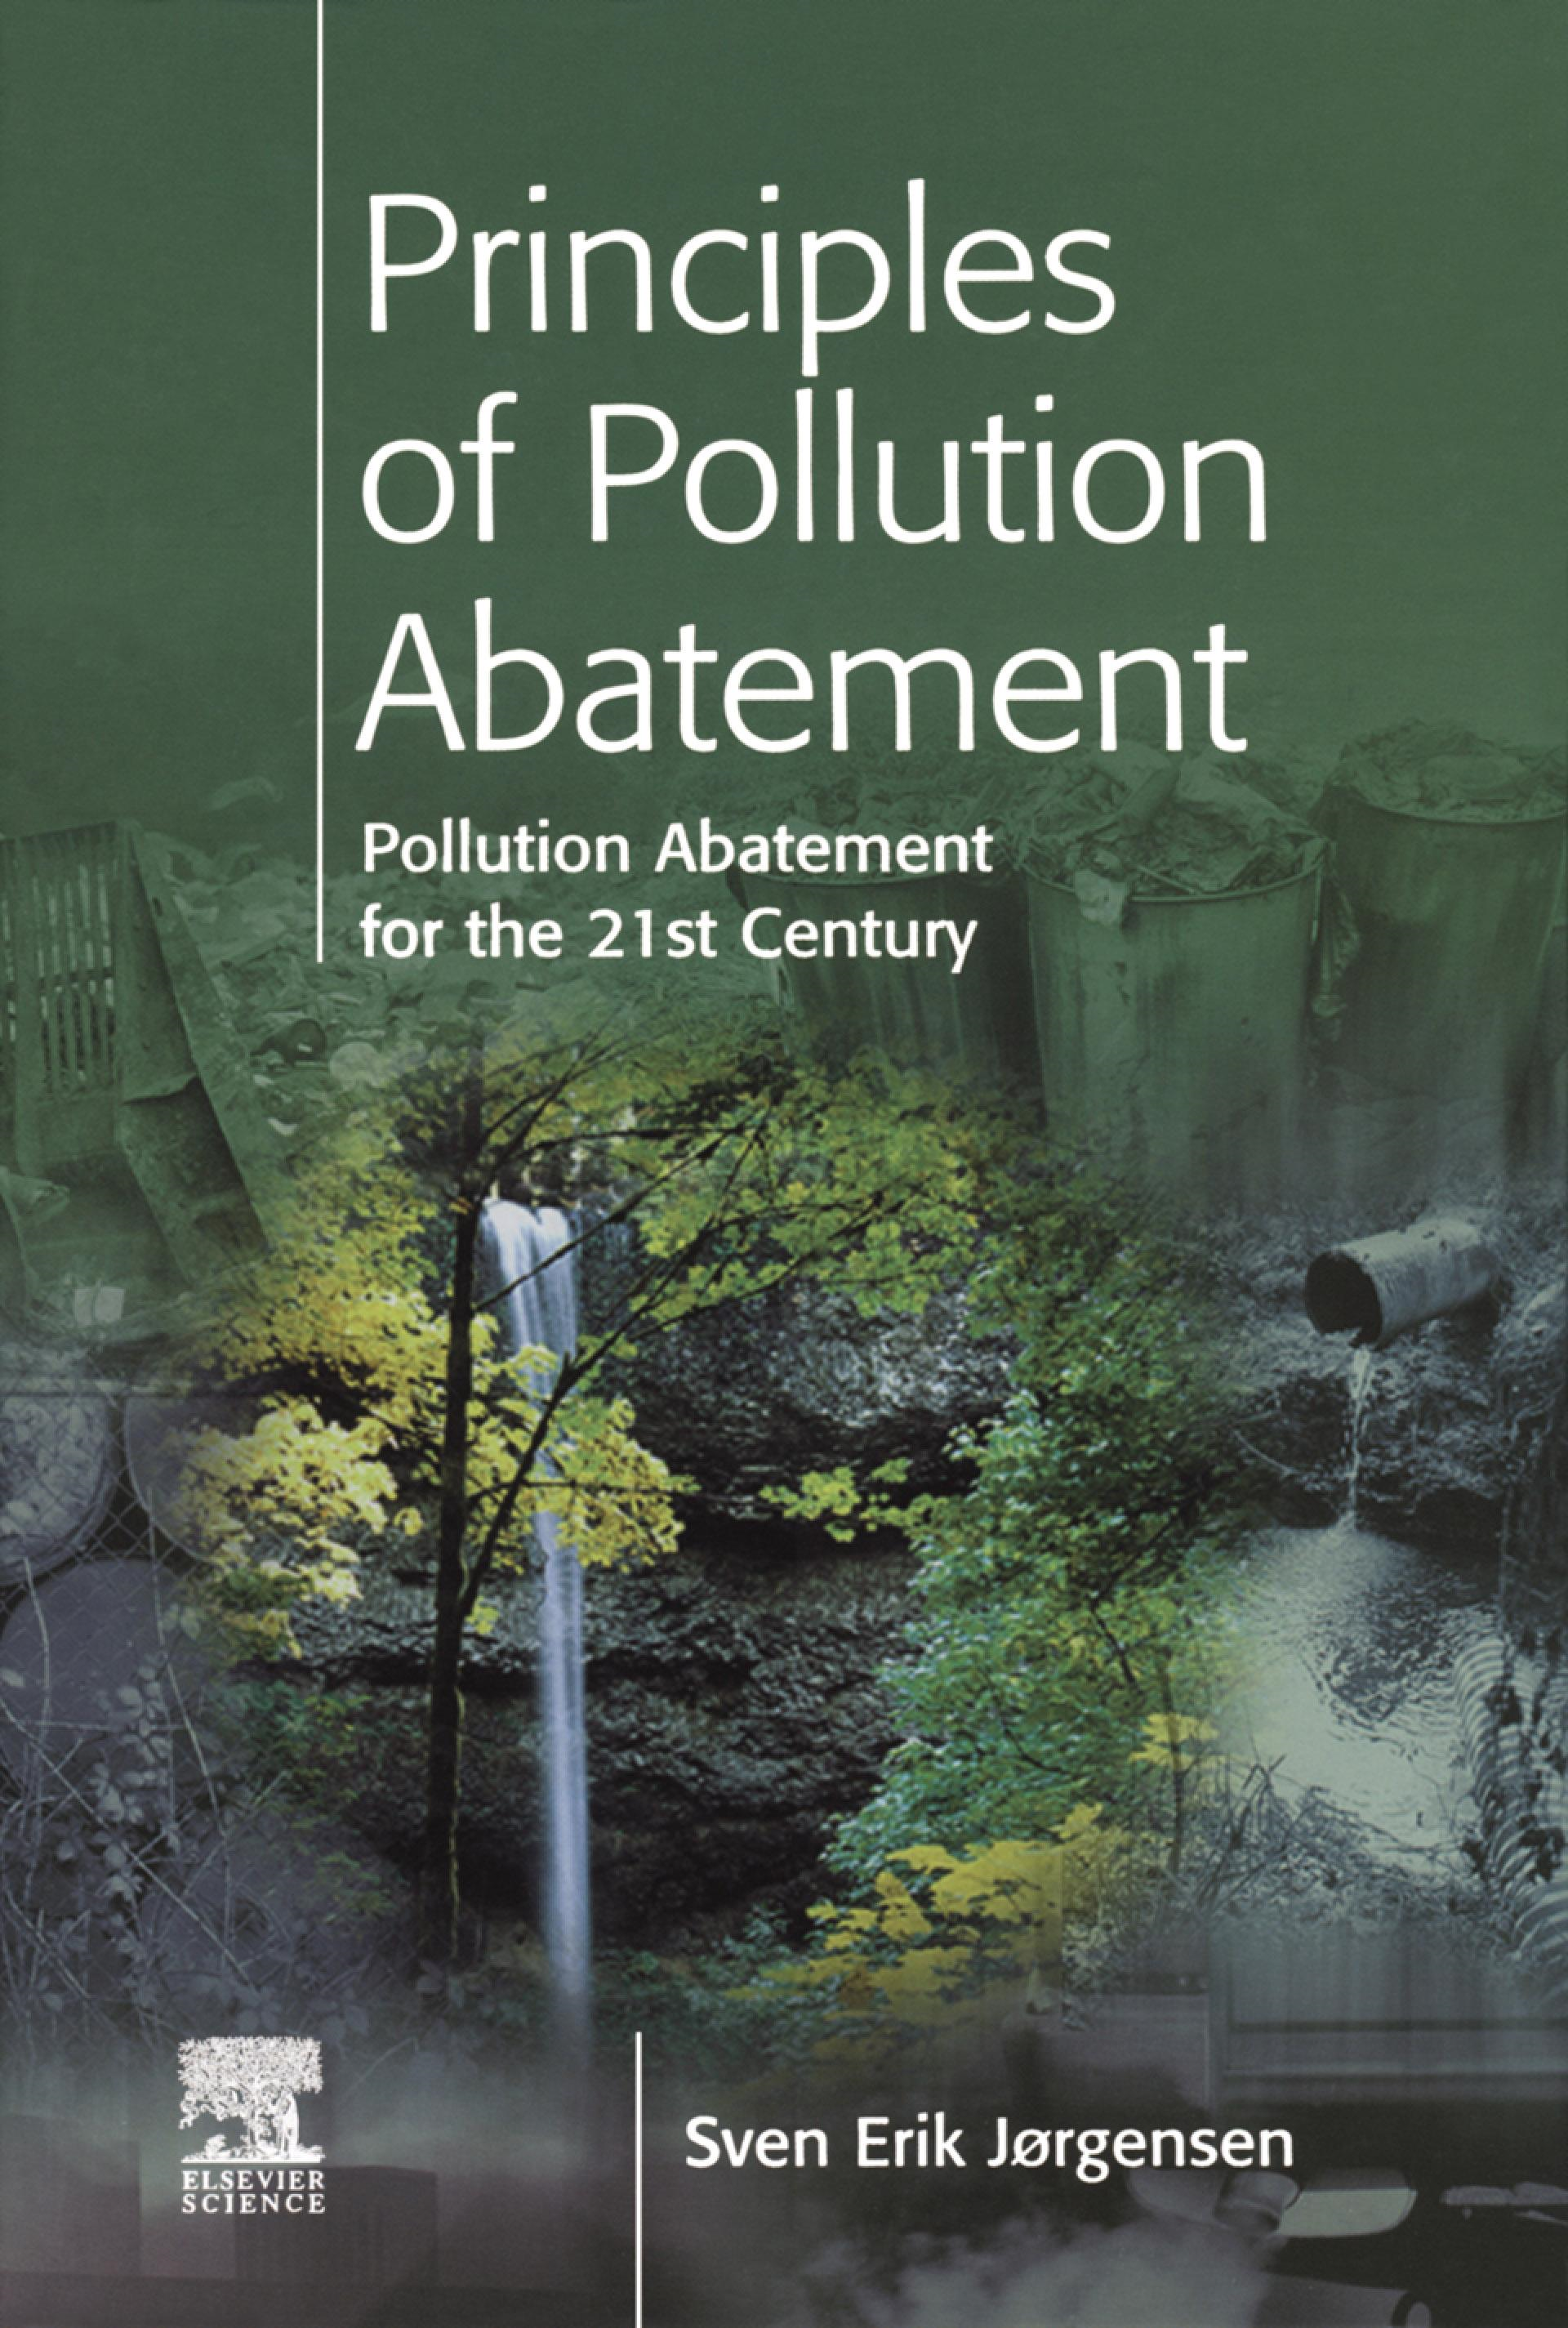 Principles of Pollution Abatement: Pollution Abatement for the 21st Century